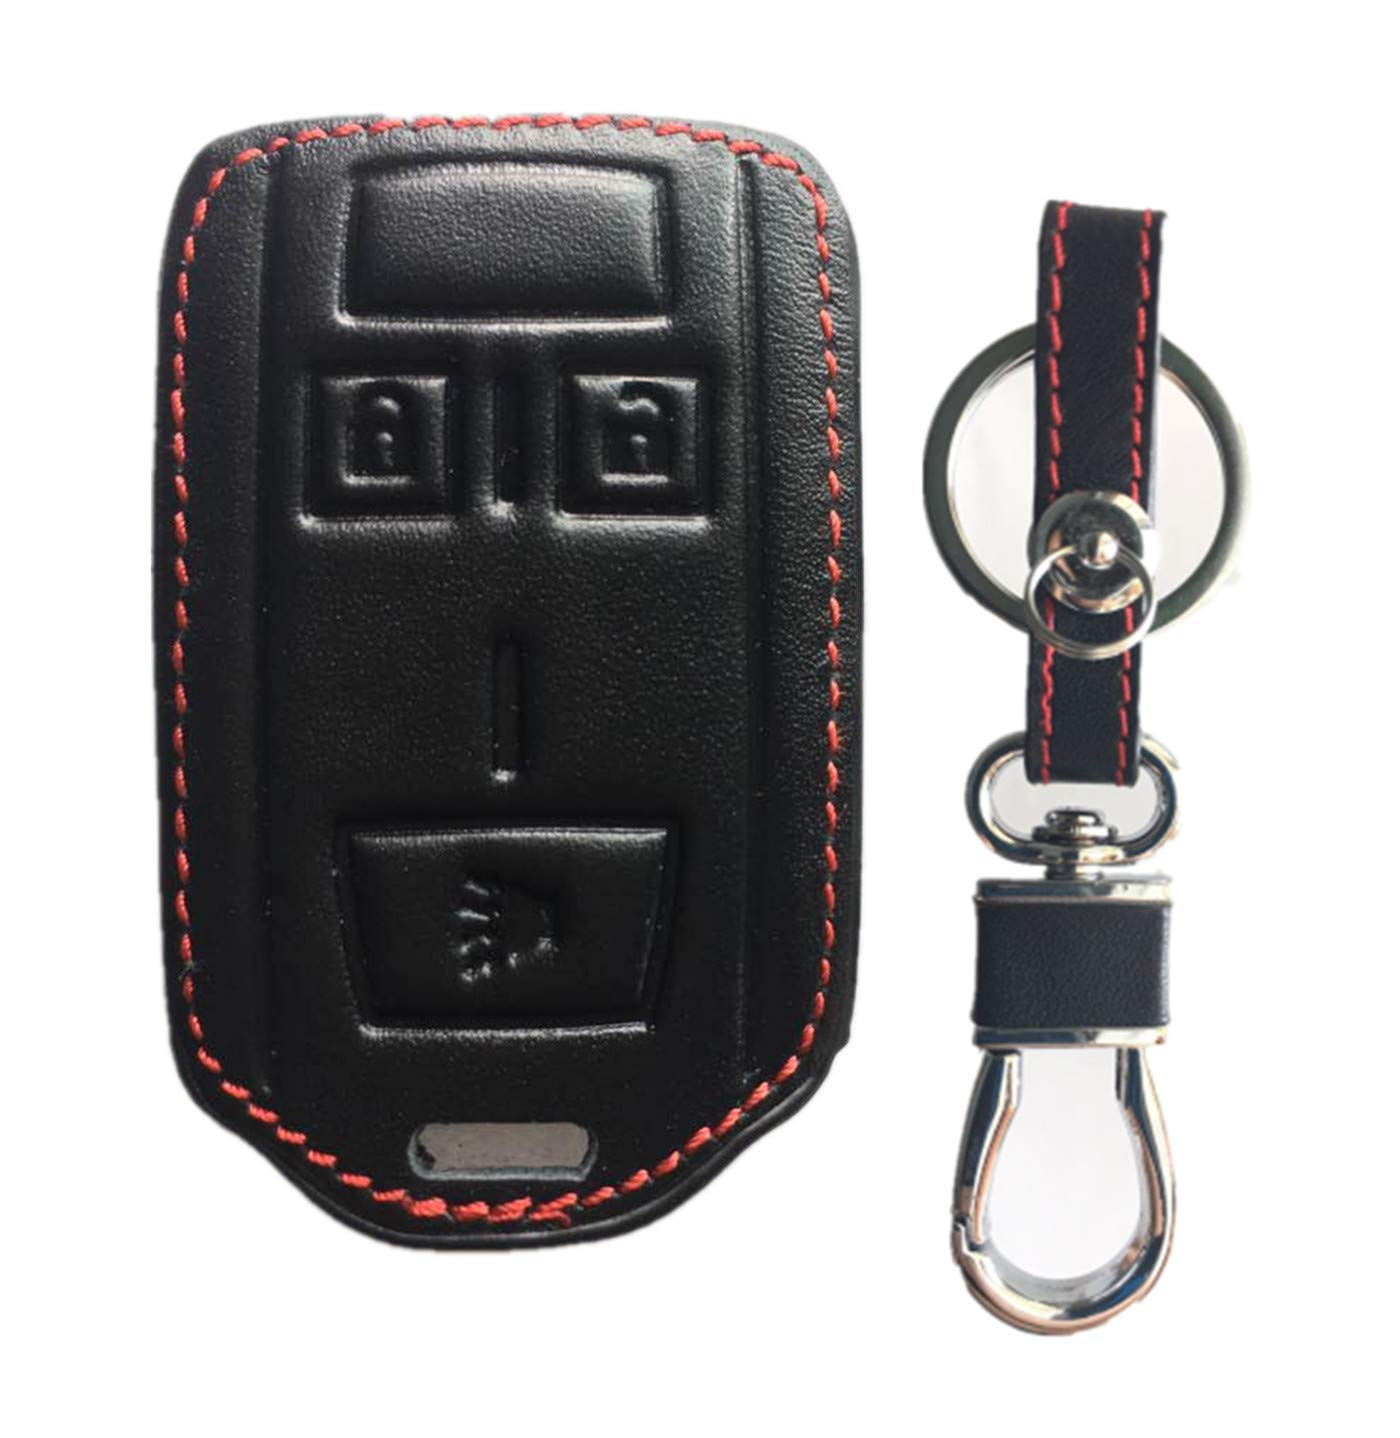 KAWIHEN Leather Smart Remote Key Fob Case Holder Cover For Chevrolet Silverado 1500 Colorado Tahoe Suburban Gmc Yukon Sierra 1500 Canyon M3N-32337100 13577771